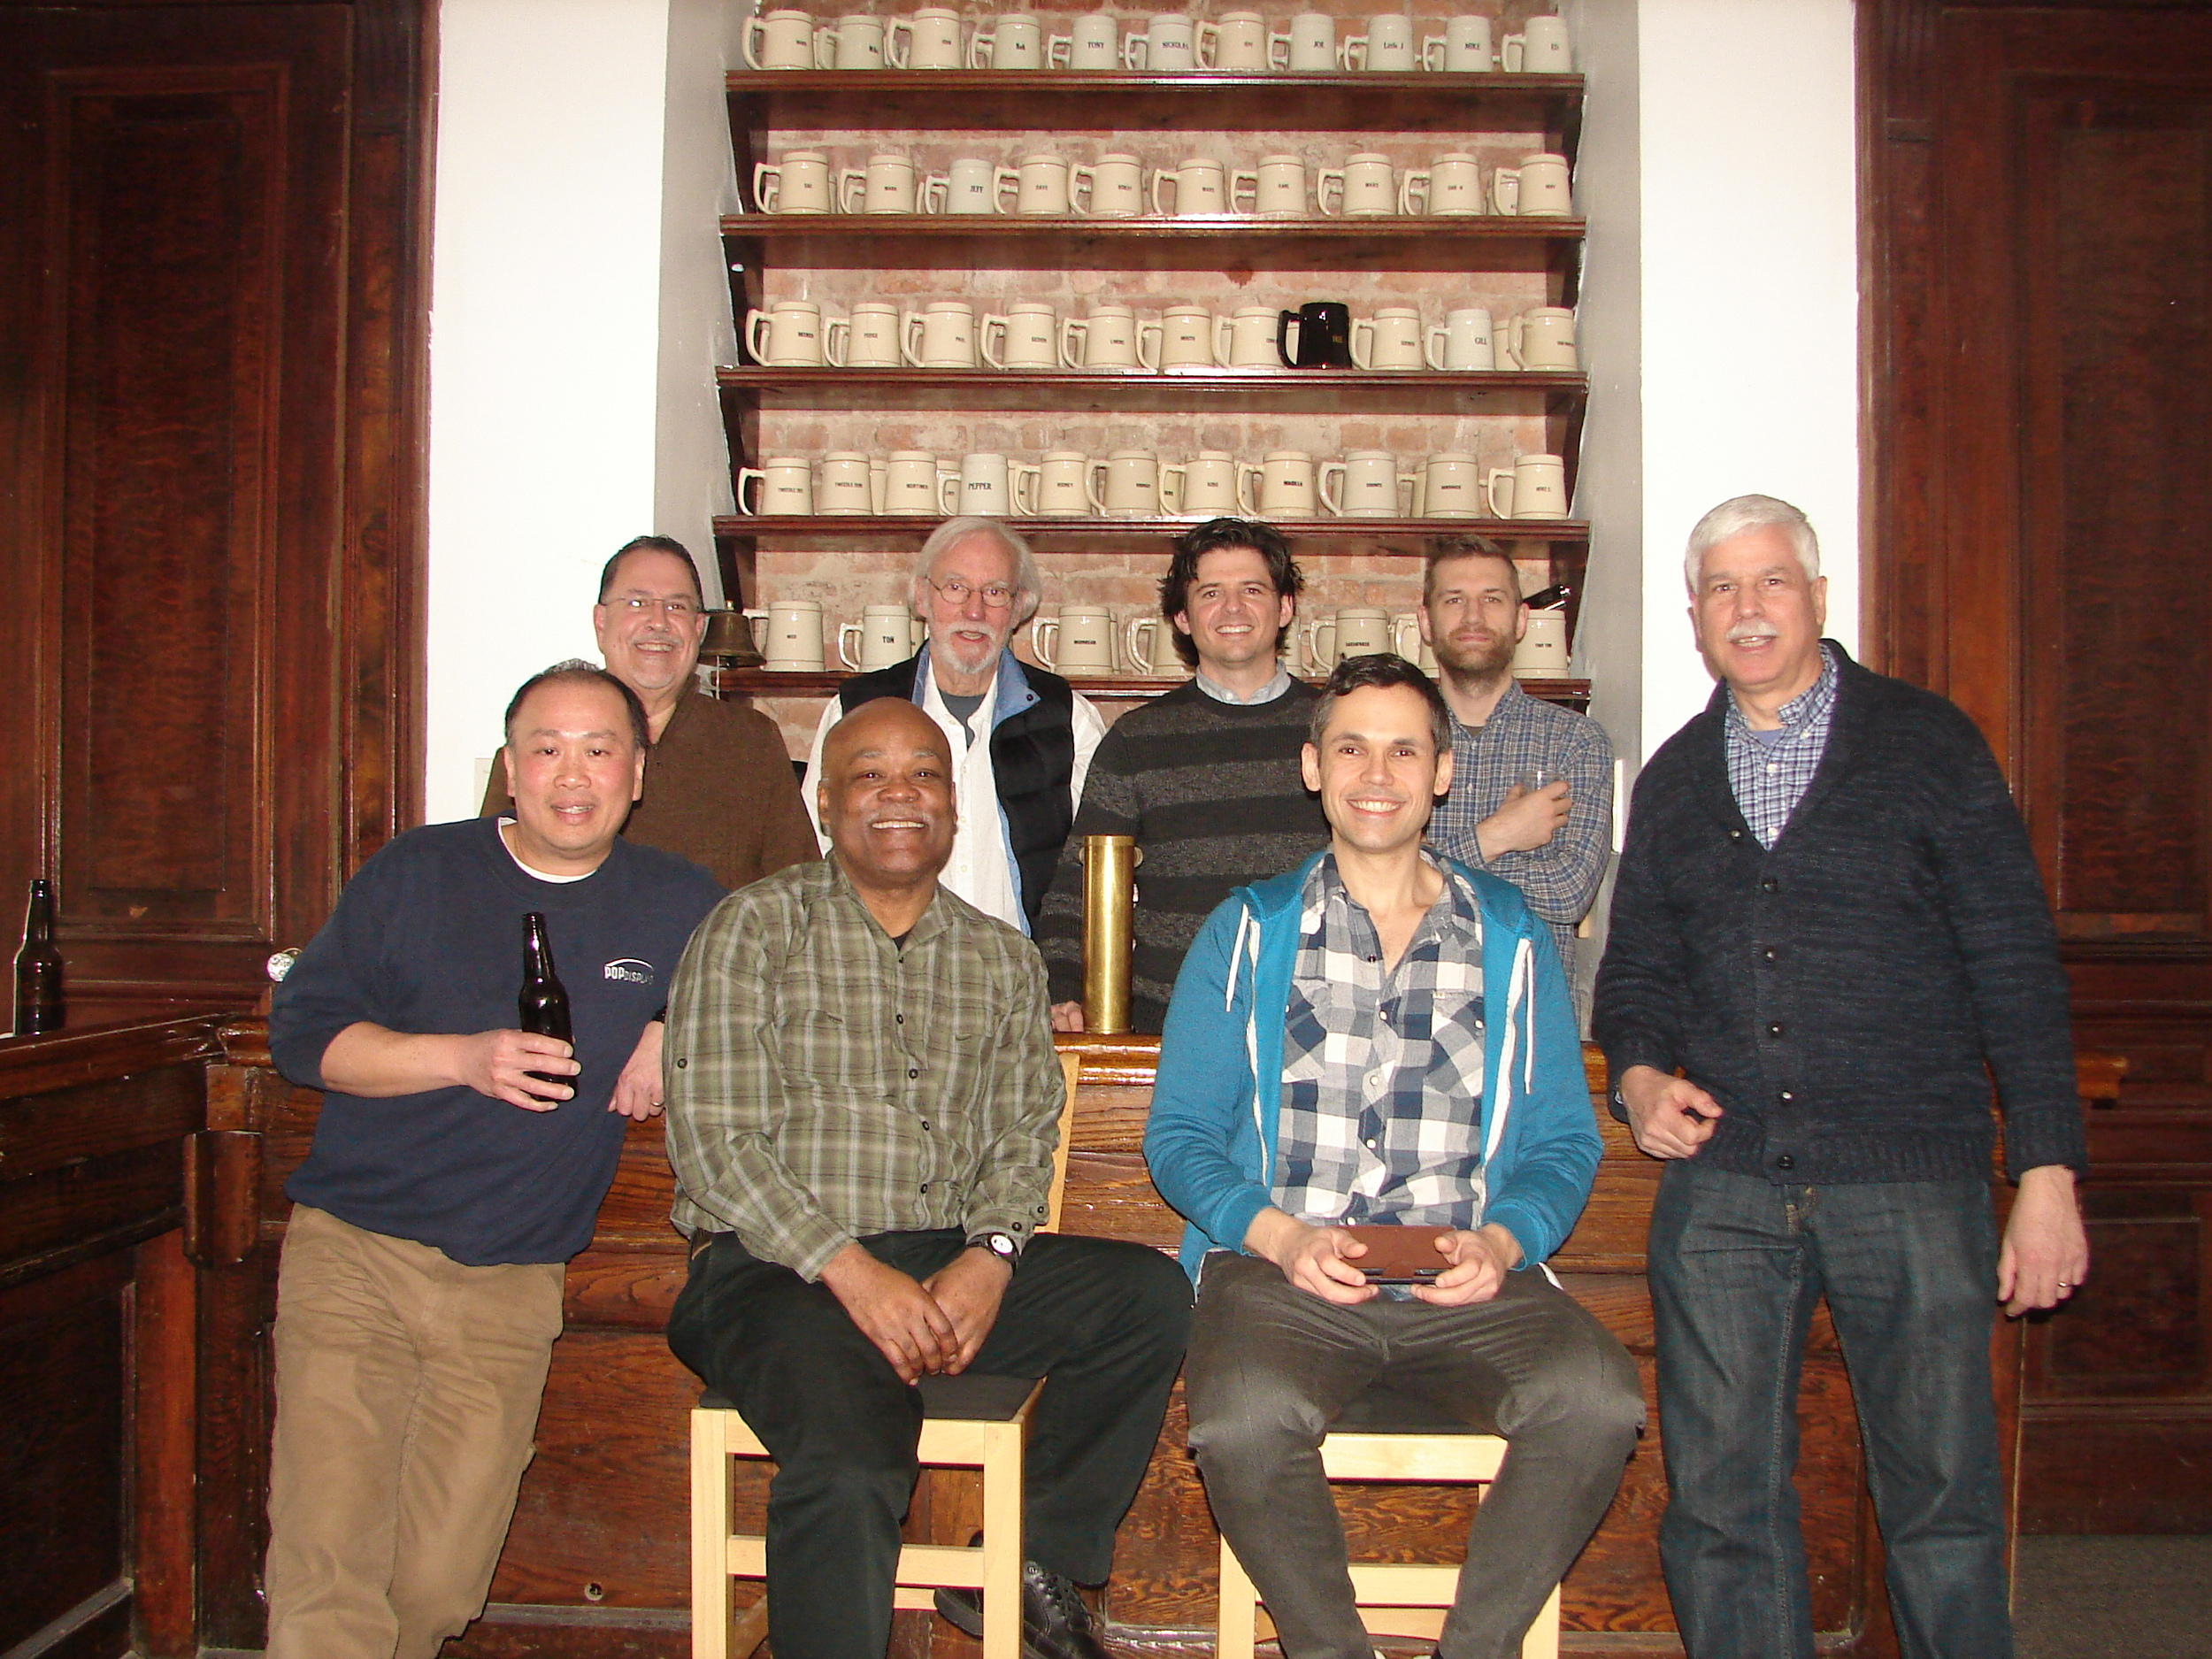 Pictured in the back row, starting from the left are Ramon Lacomba, Vern Ford, Chase Hill, Alex Scott. In the front row are Tom Wong, Gil Gerald, Jonathan Mark Levy, and Tom Fiorella.